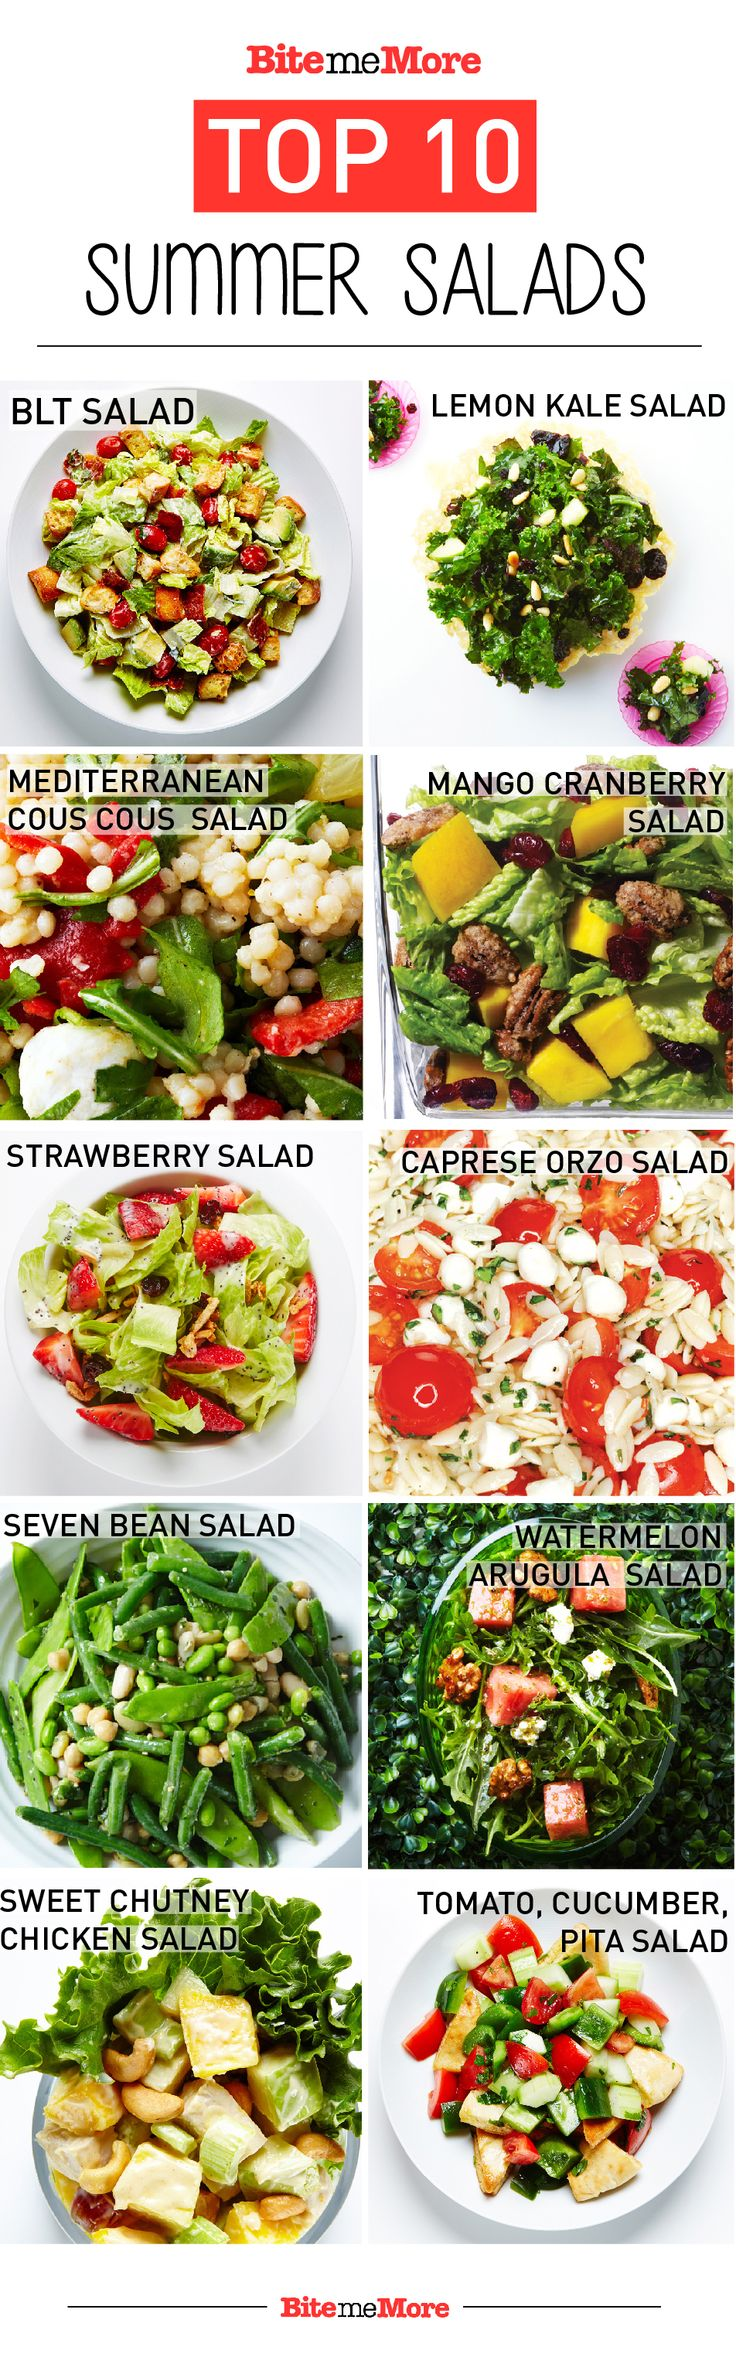 Check out our Top 10 light and leafy salads for summer. #BiteMeMore #salad #recipes